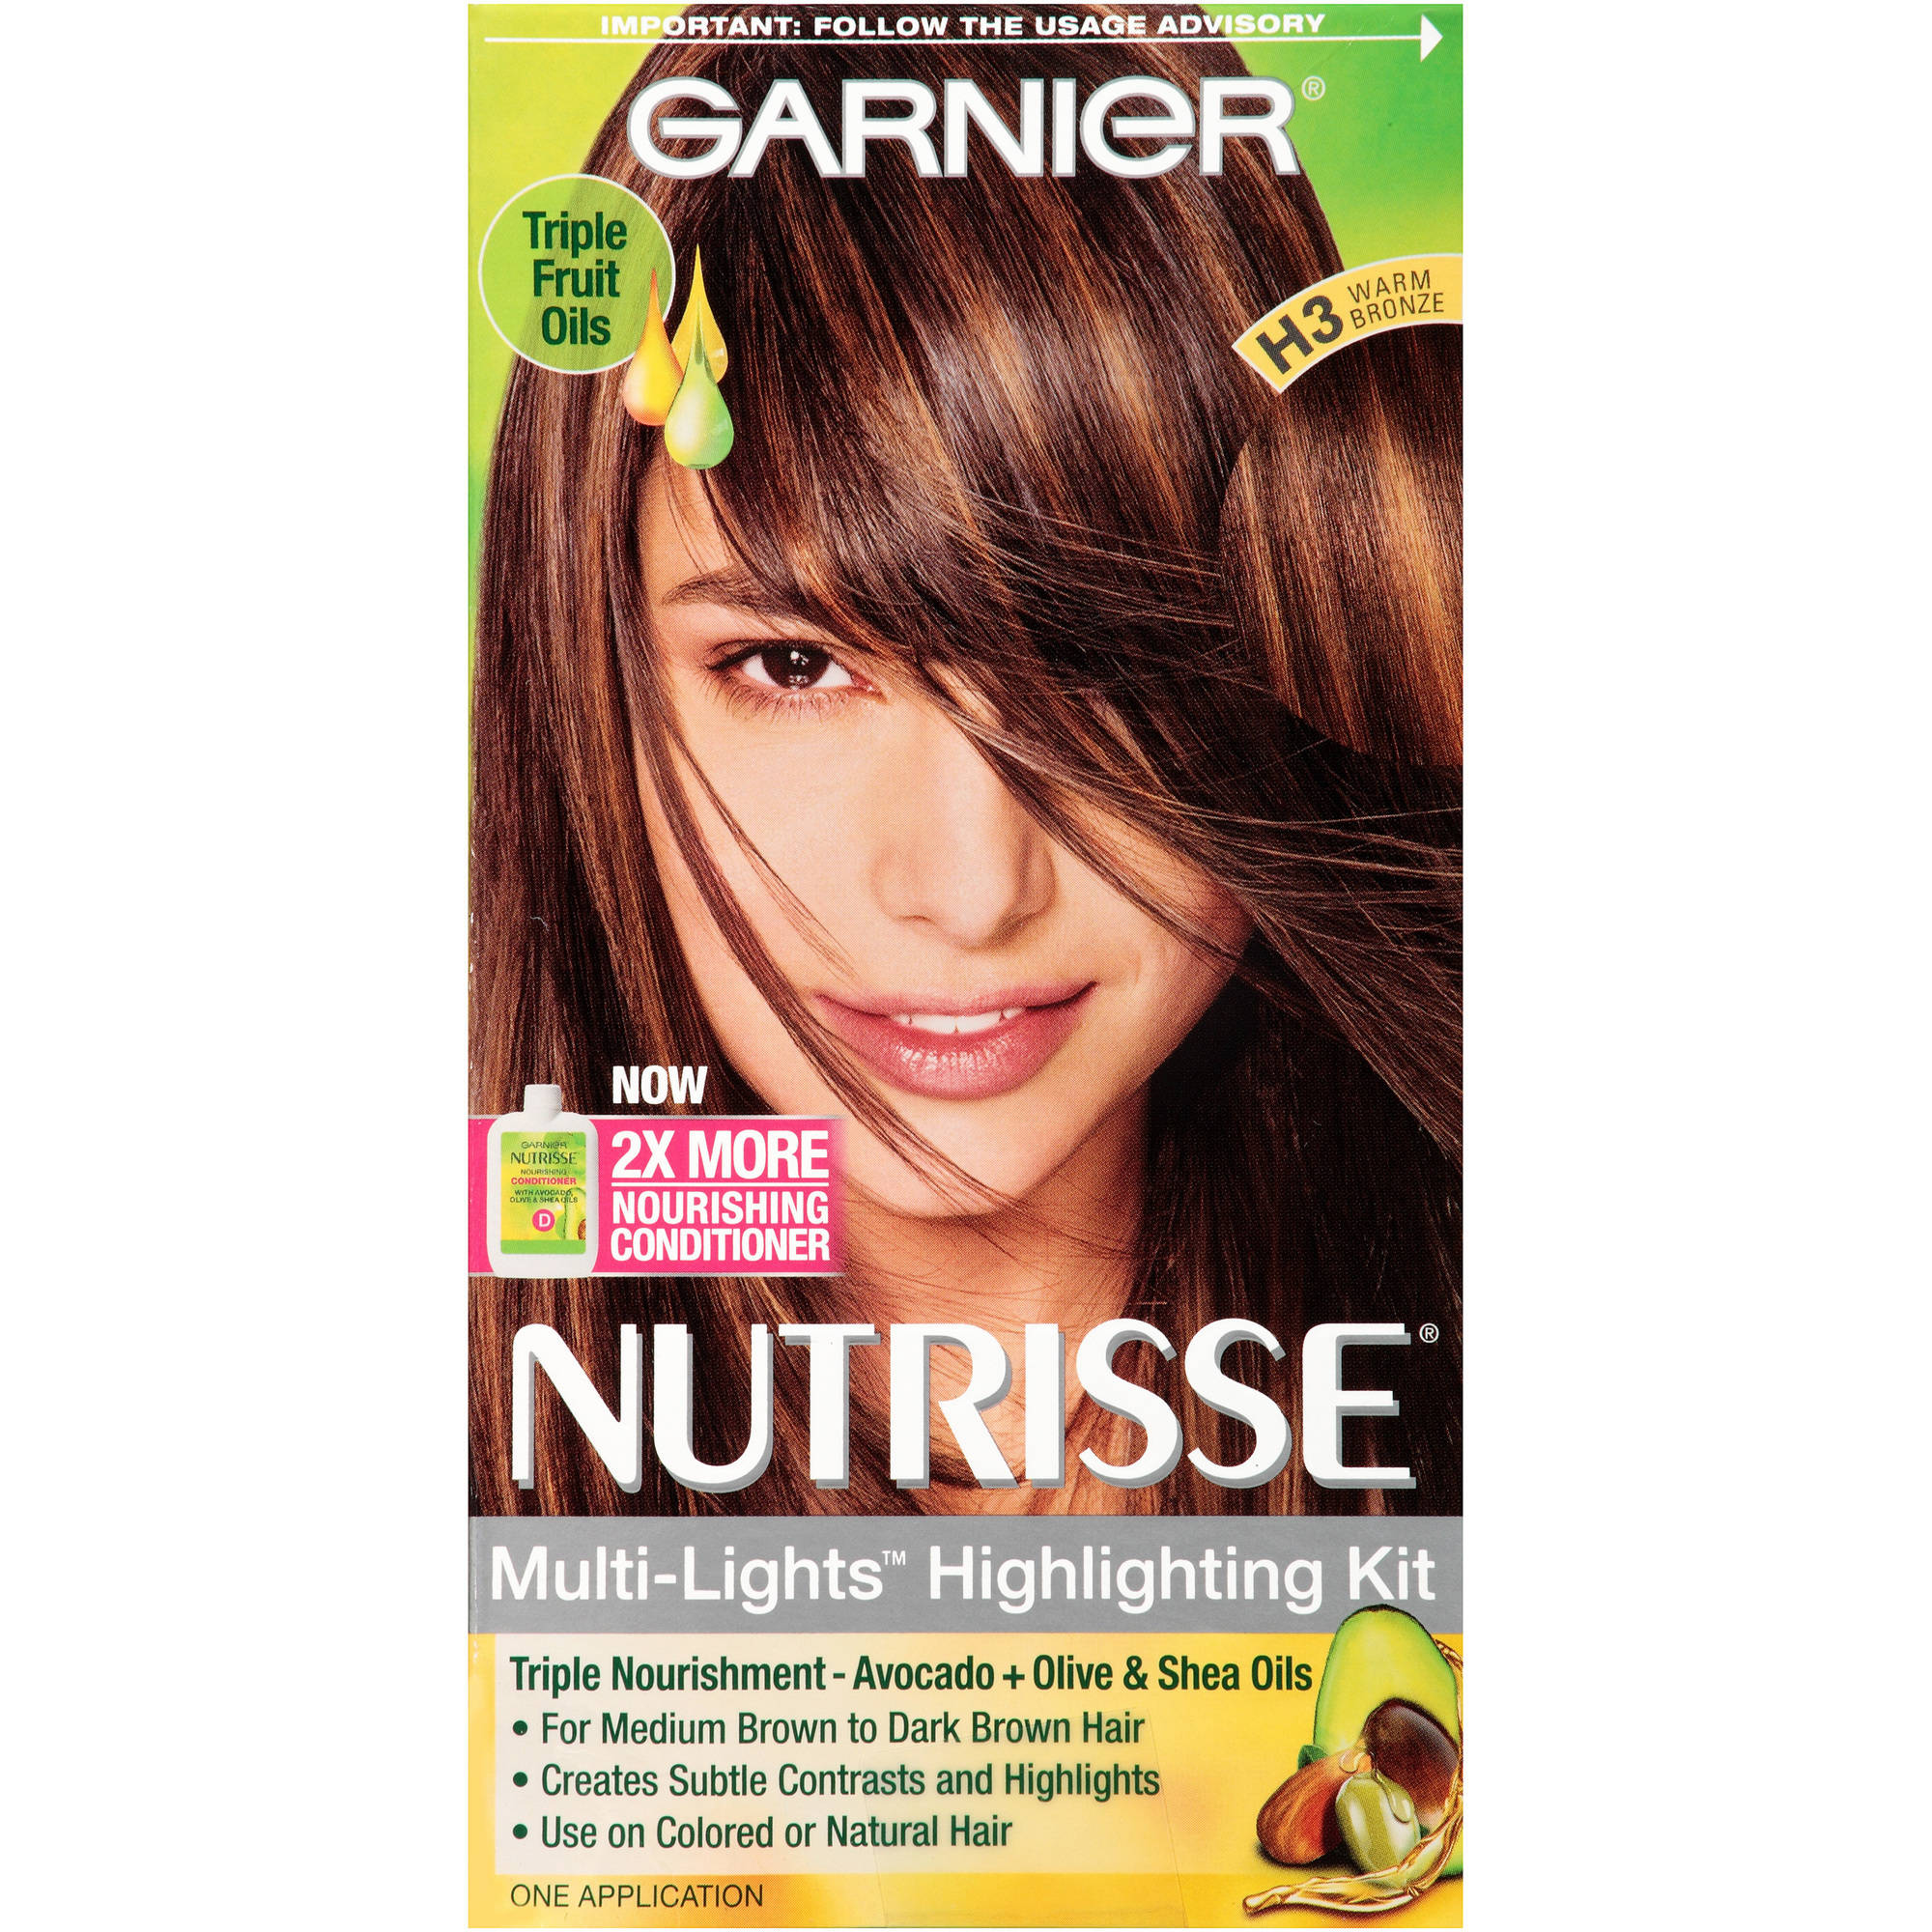 Garnier Nutrisse Highlighting